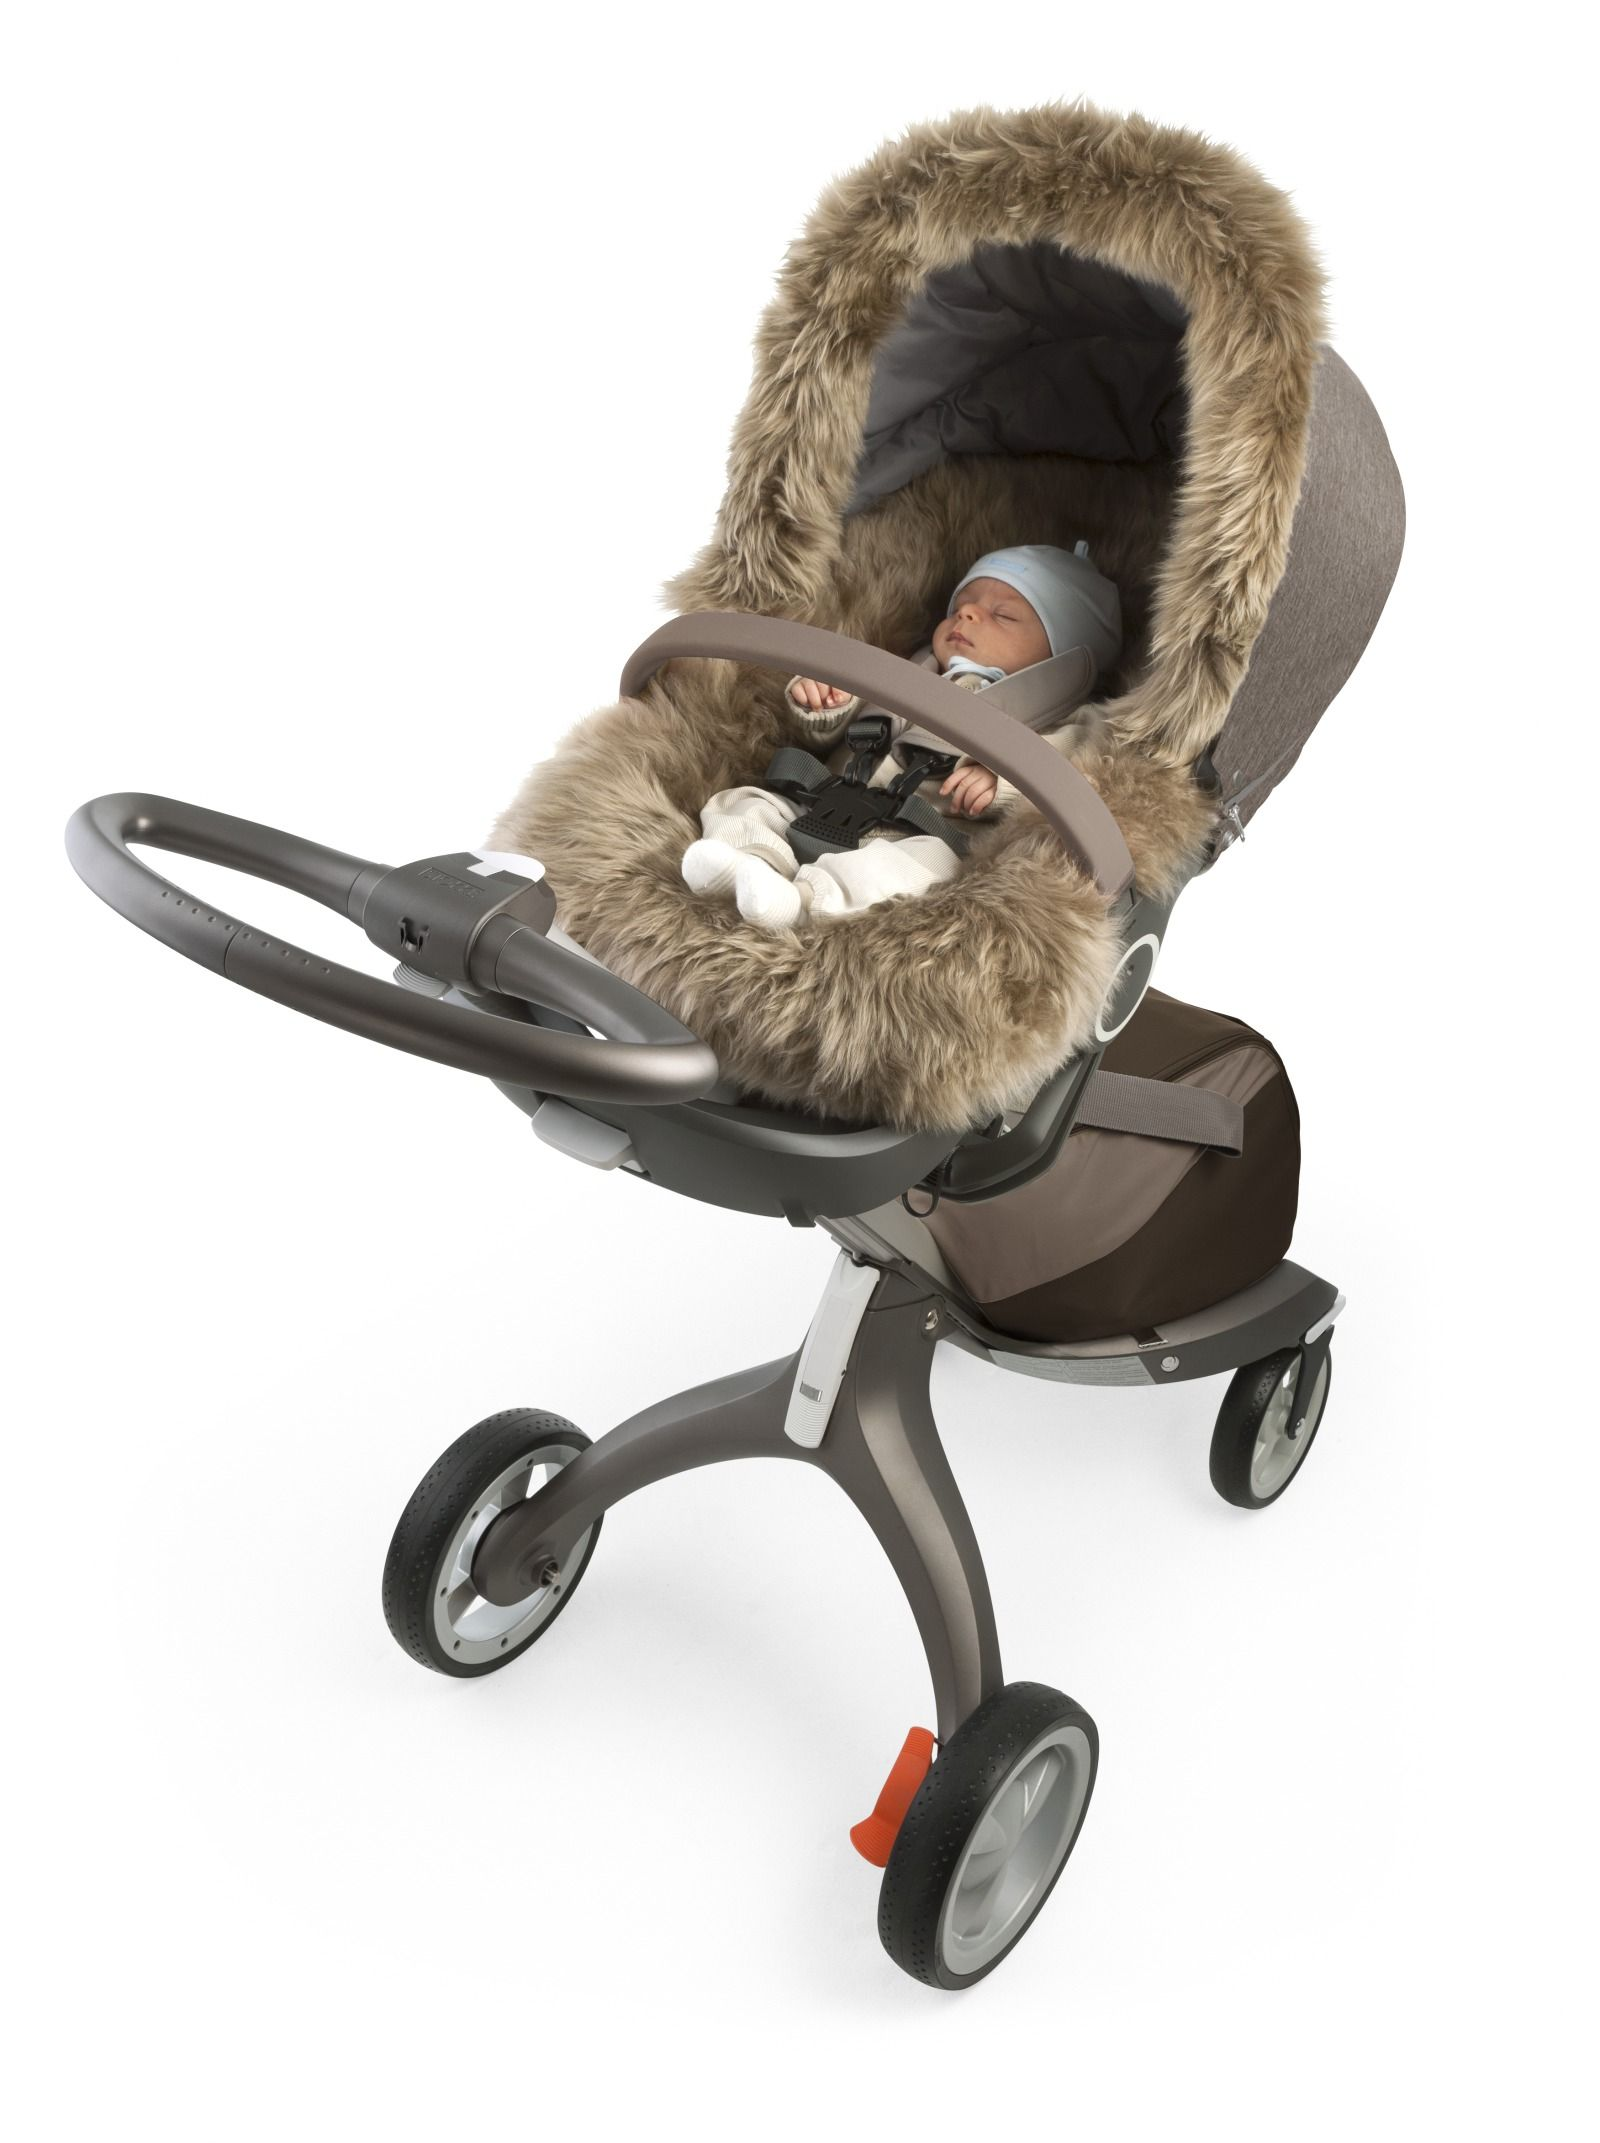 Silla Stokke Xplory The Stokke Xplory Winter Kit Is The Perfect Stroller